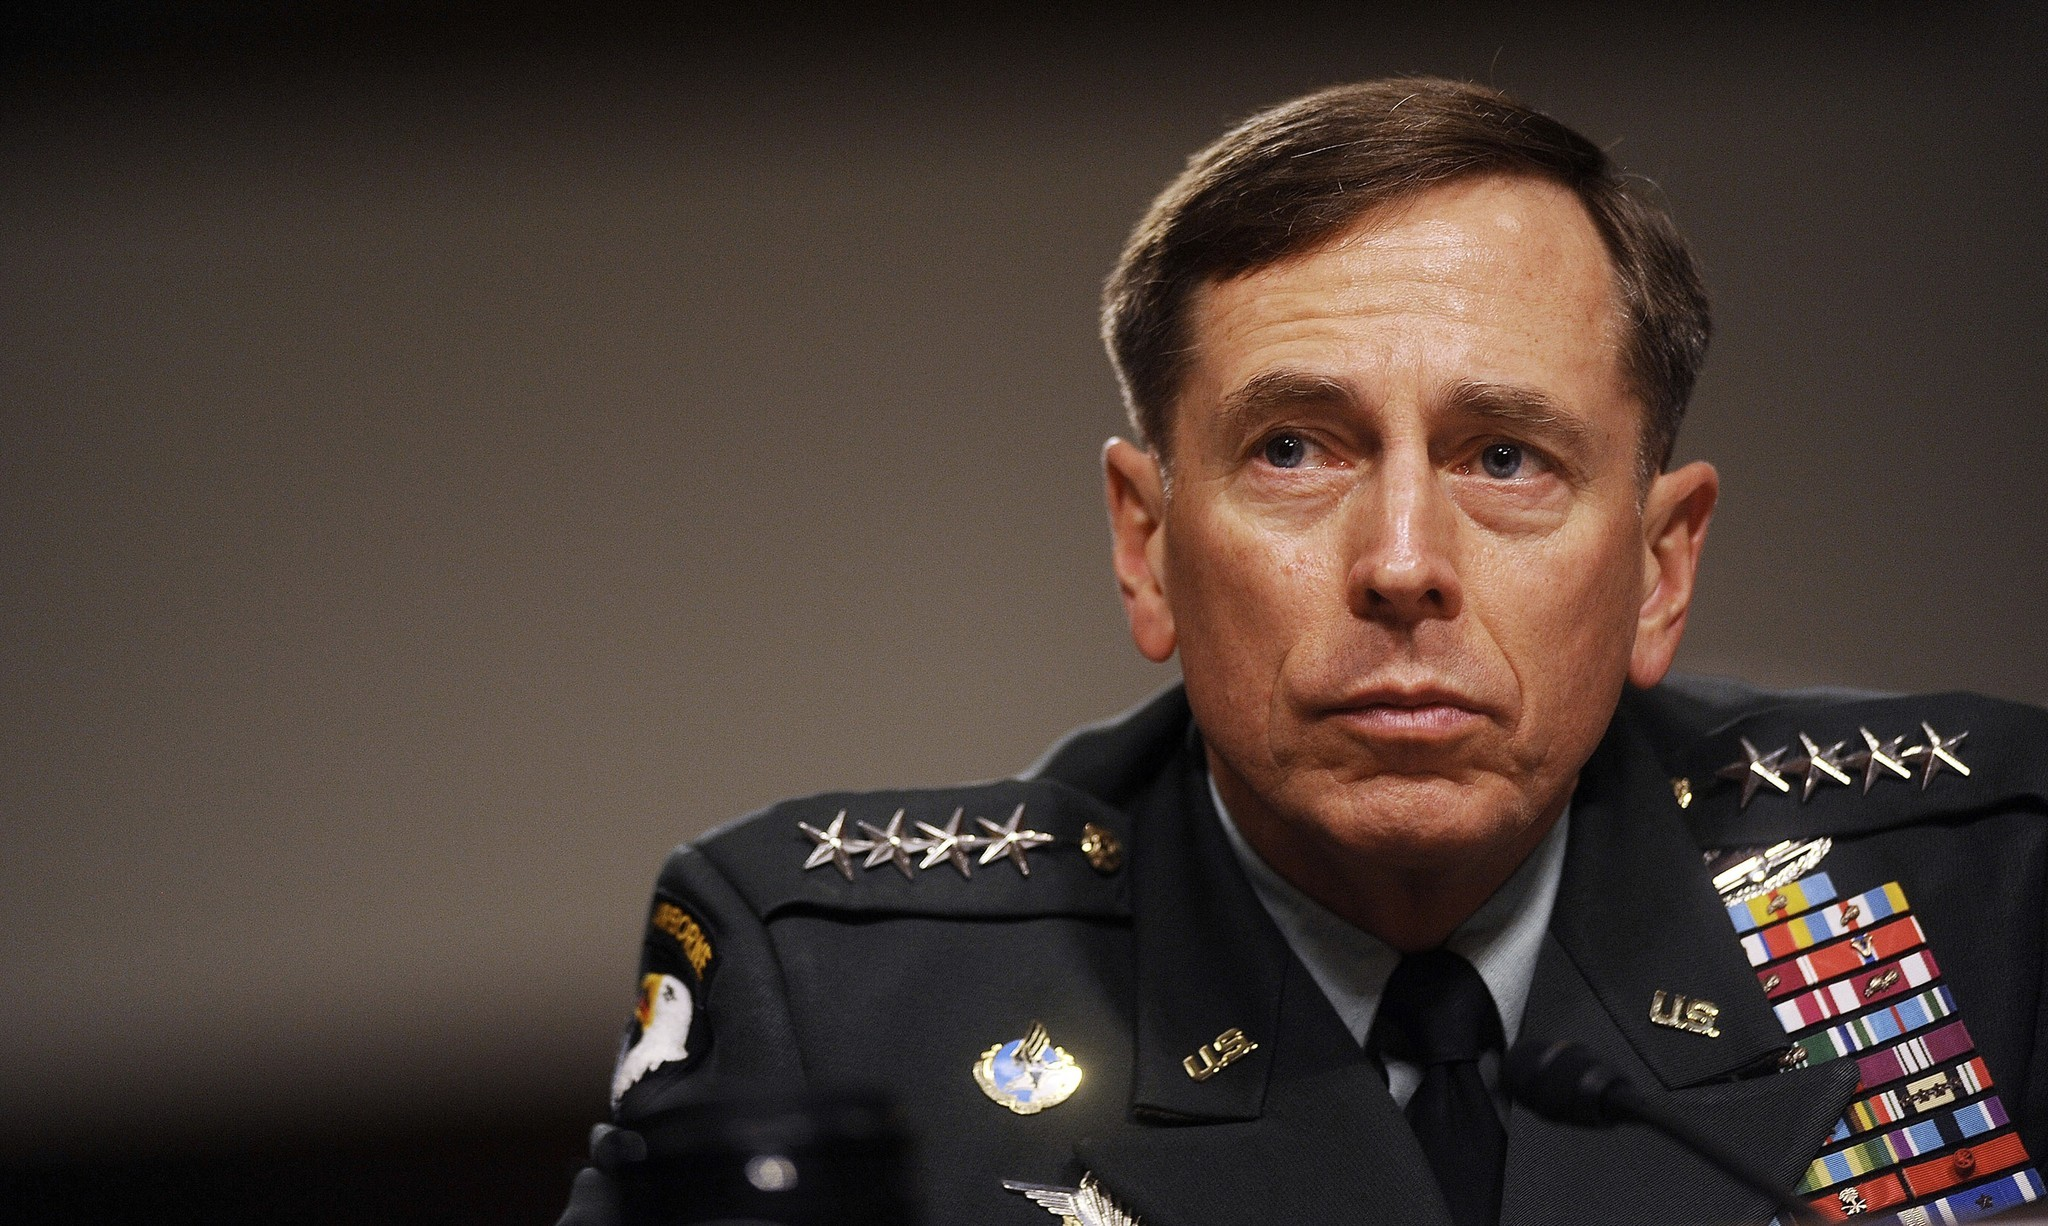 To Send a Message, Judge Sentences David Petraeus to 75% of One Speaking Fee | Common Dreams | Breaking News & Views for the Progressive Community - davidpetraeus030515